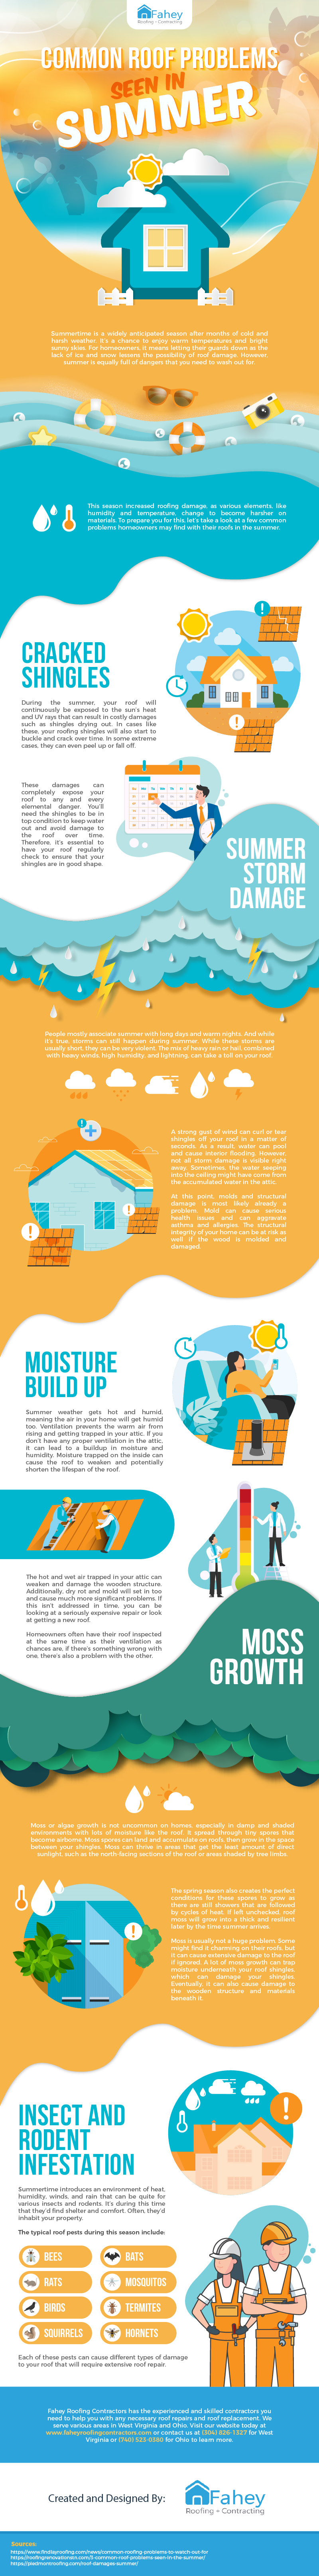 Common Roof Problems Seen in Summer infographic